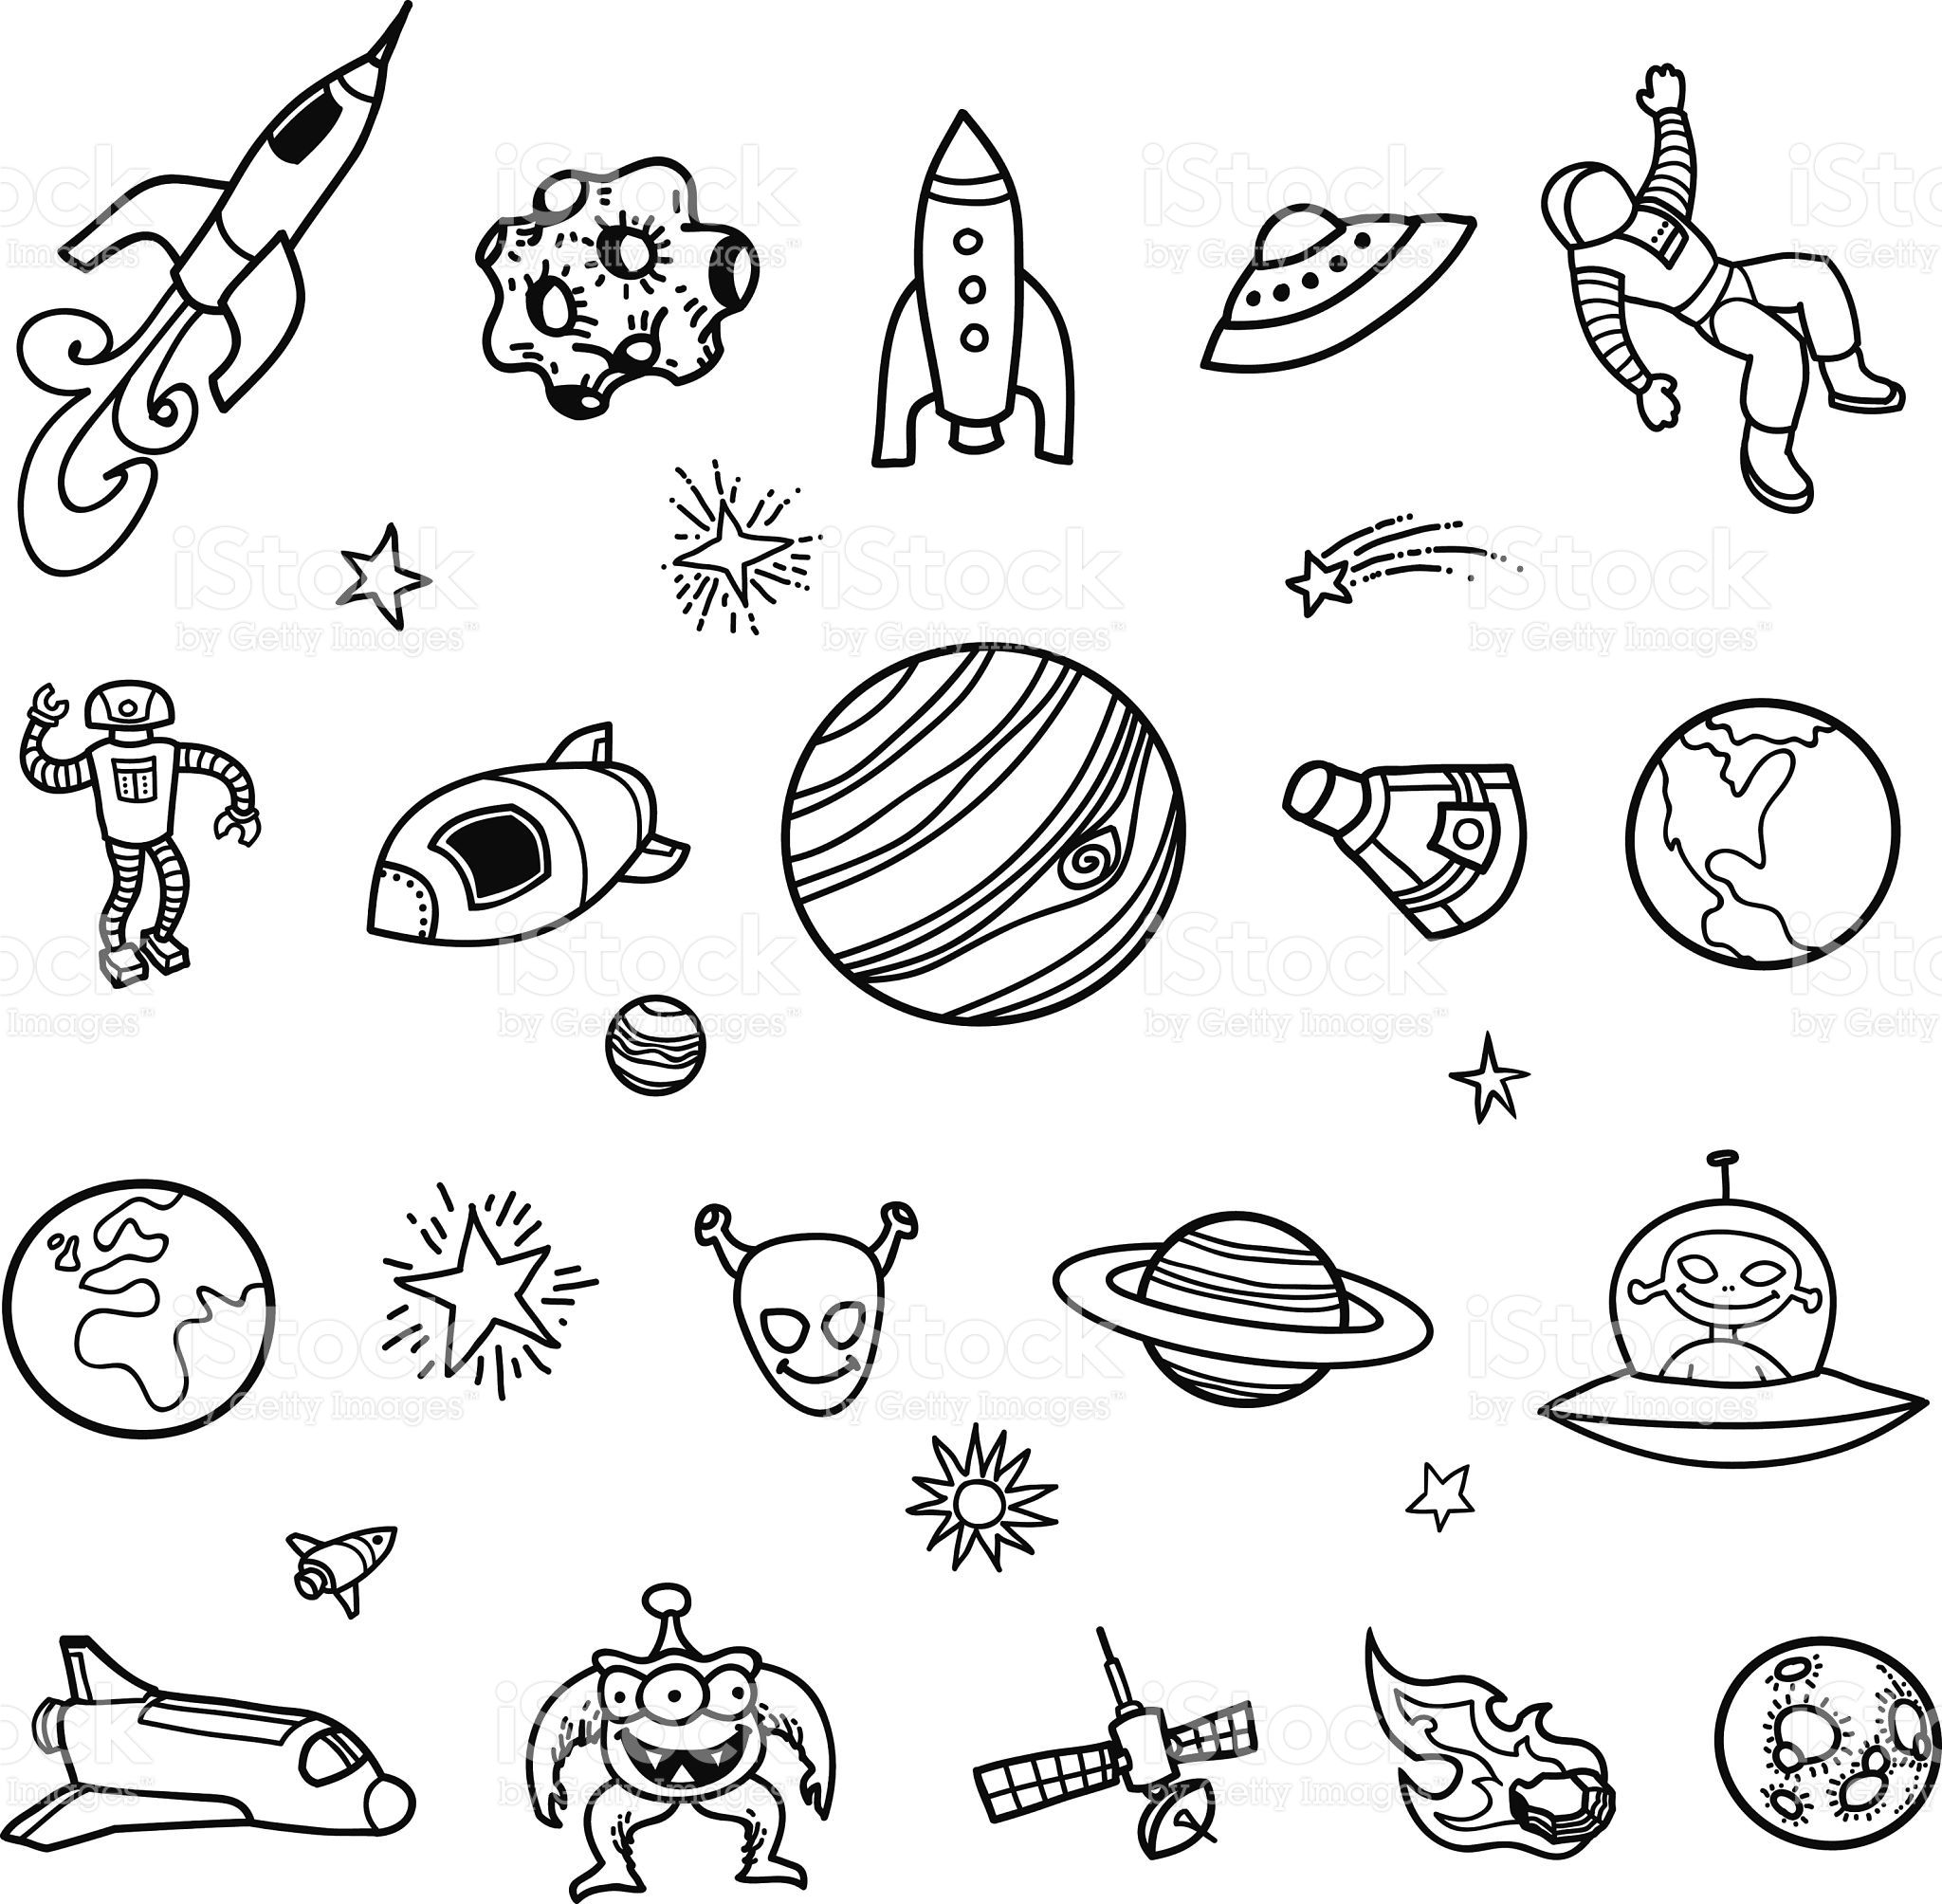 Clipart outer space neat black and white vector royalty free library A set of hand-drawn, unfilled line drawings of space ships, planets ... vector royalty free library